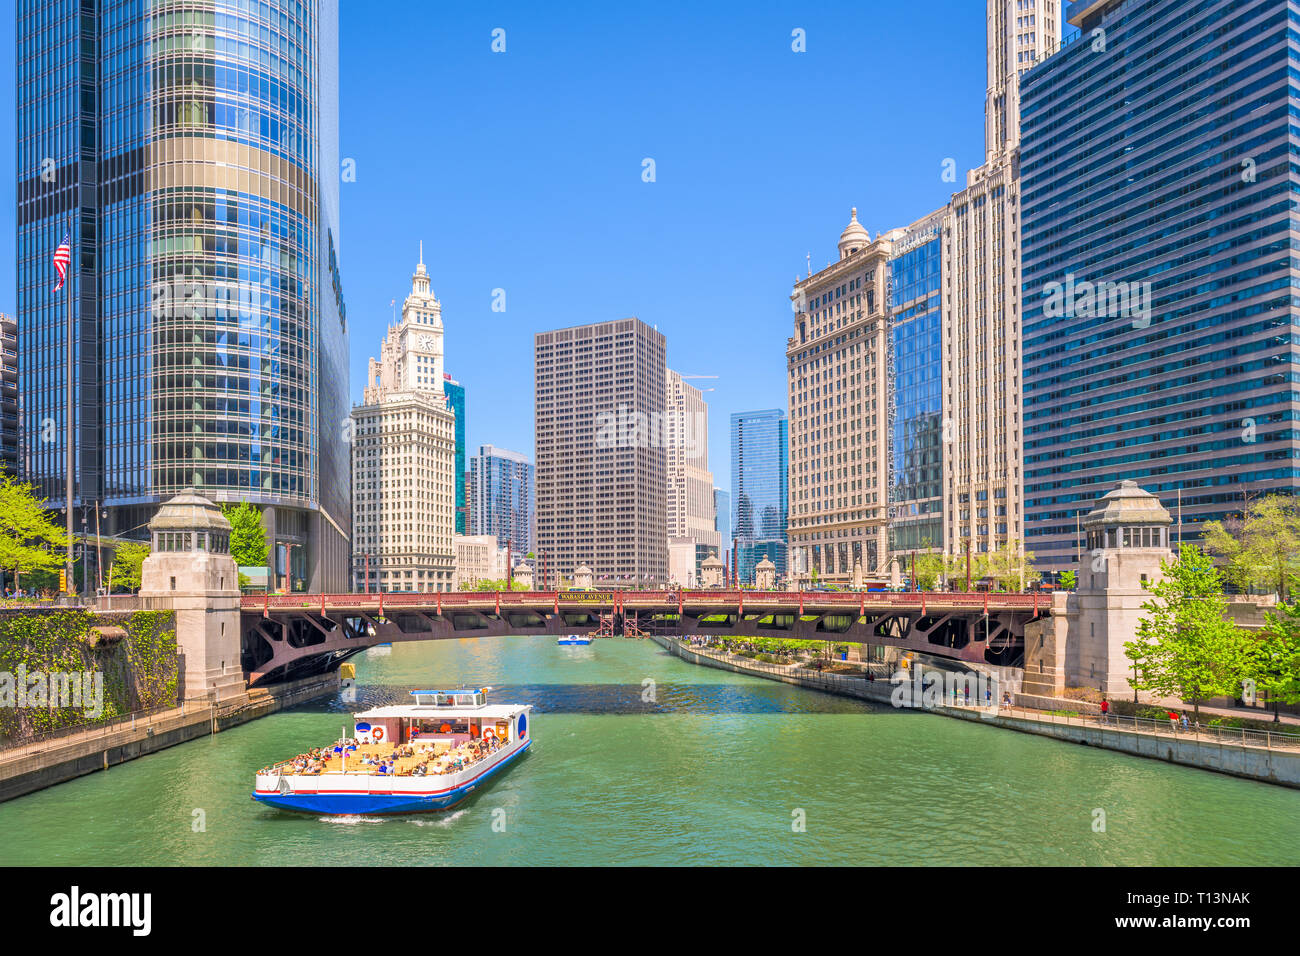 Chicago, Illinois, USA sightseeing cruise and skyline on the river. - Stock Image